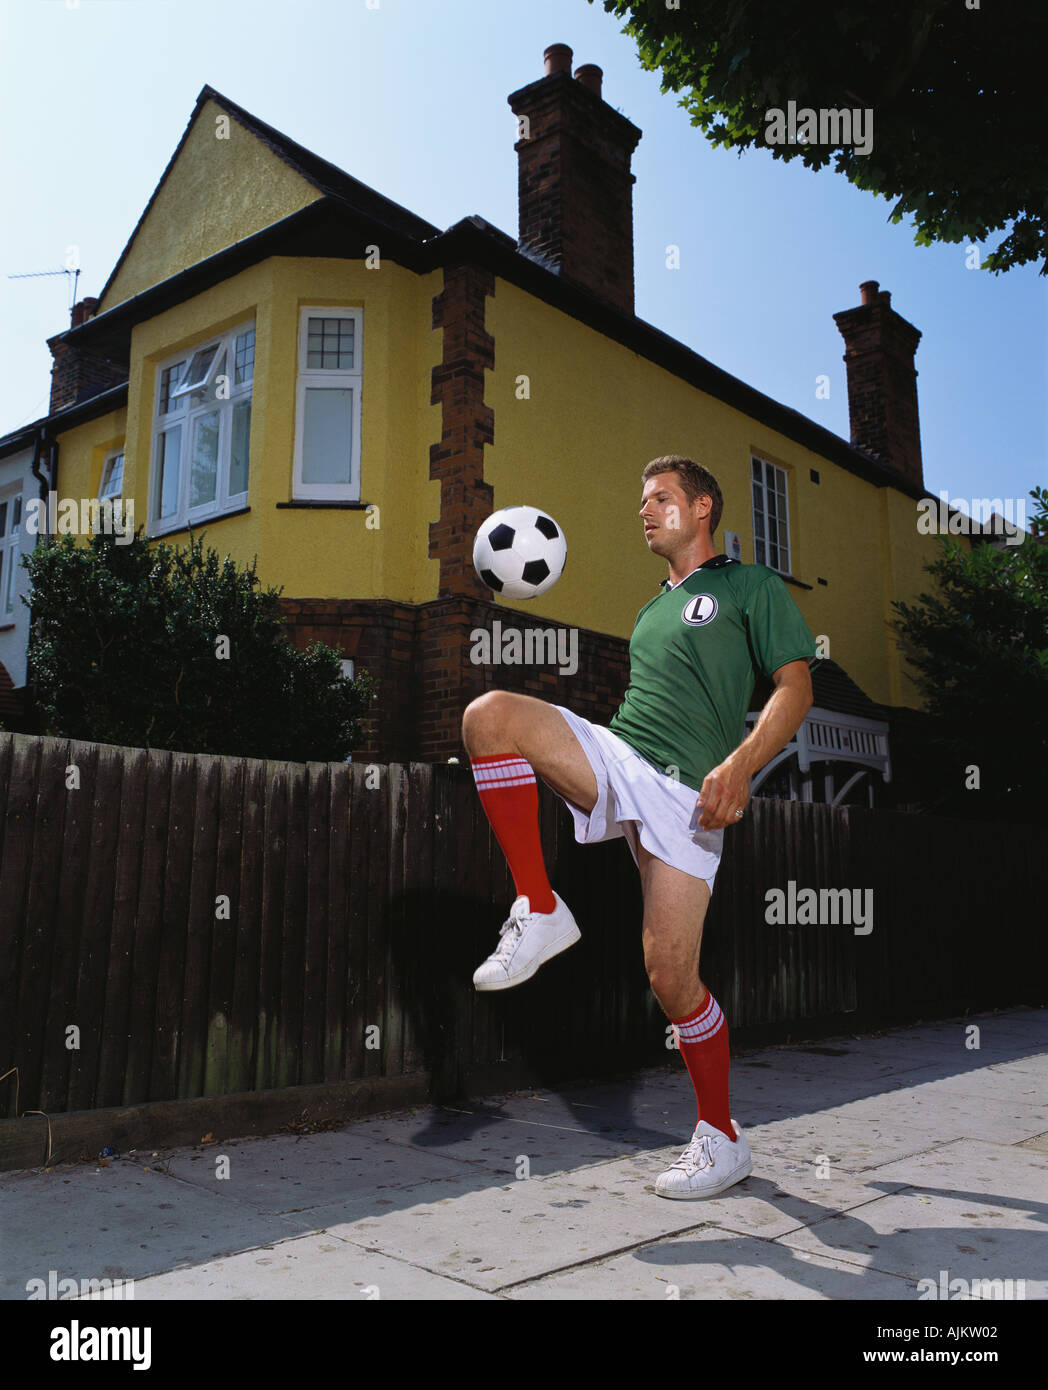 Footballer playing on pavement - Stock Image